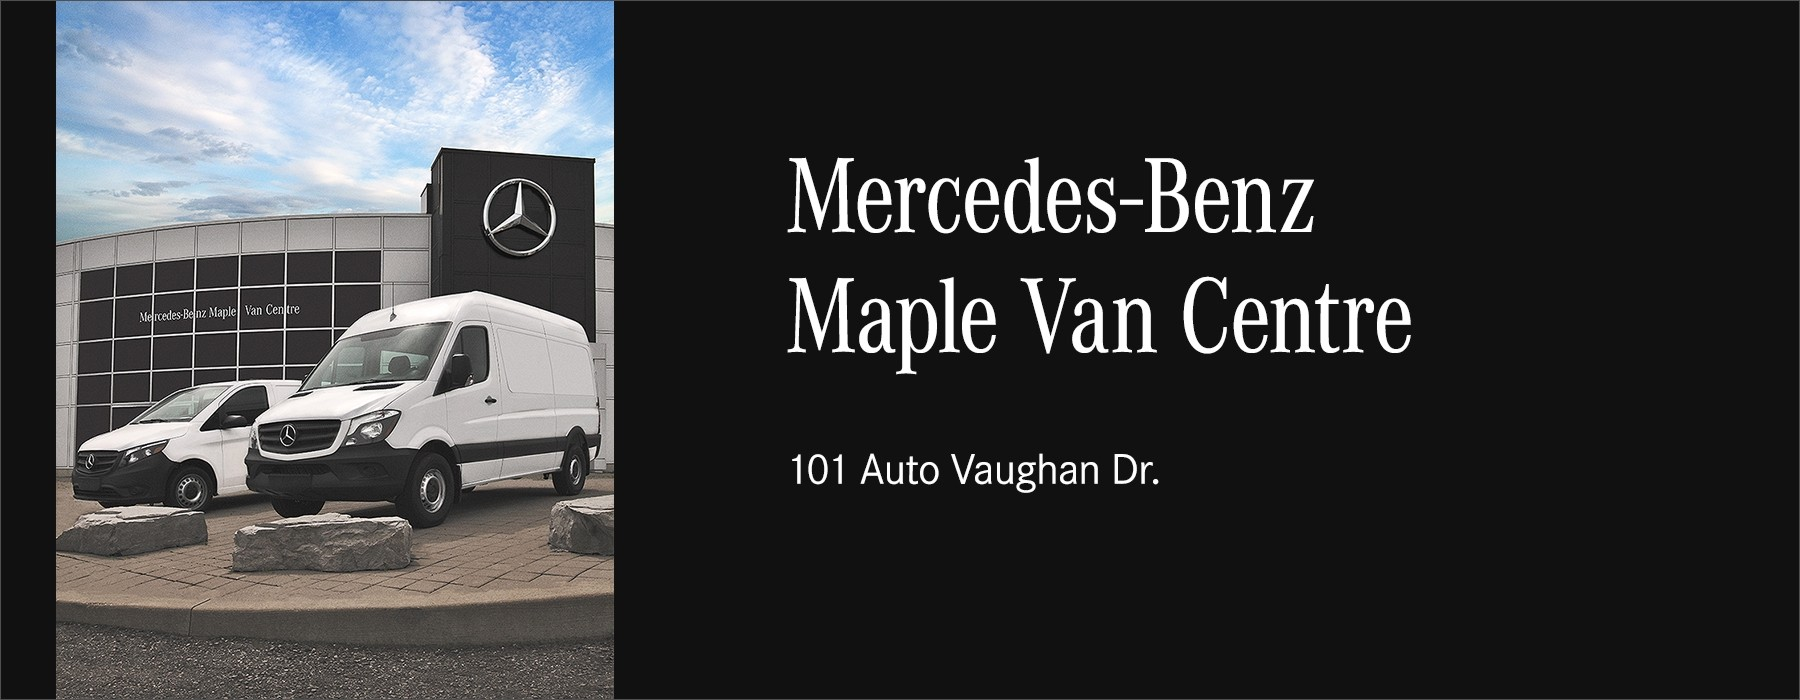 0ef2b84d0d Meet the newest member of the Mercedes-Benz Toronto Retail Group family –  Mercedes-Benz Maple Van Centre. This facility is located behind our Mercedes -Benz ...